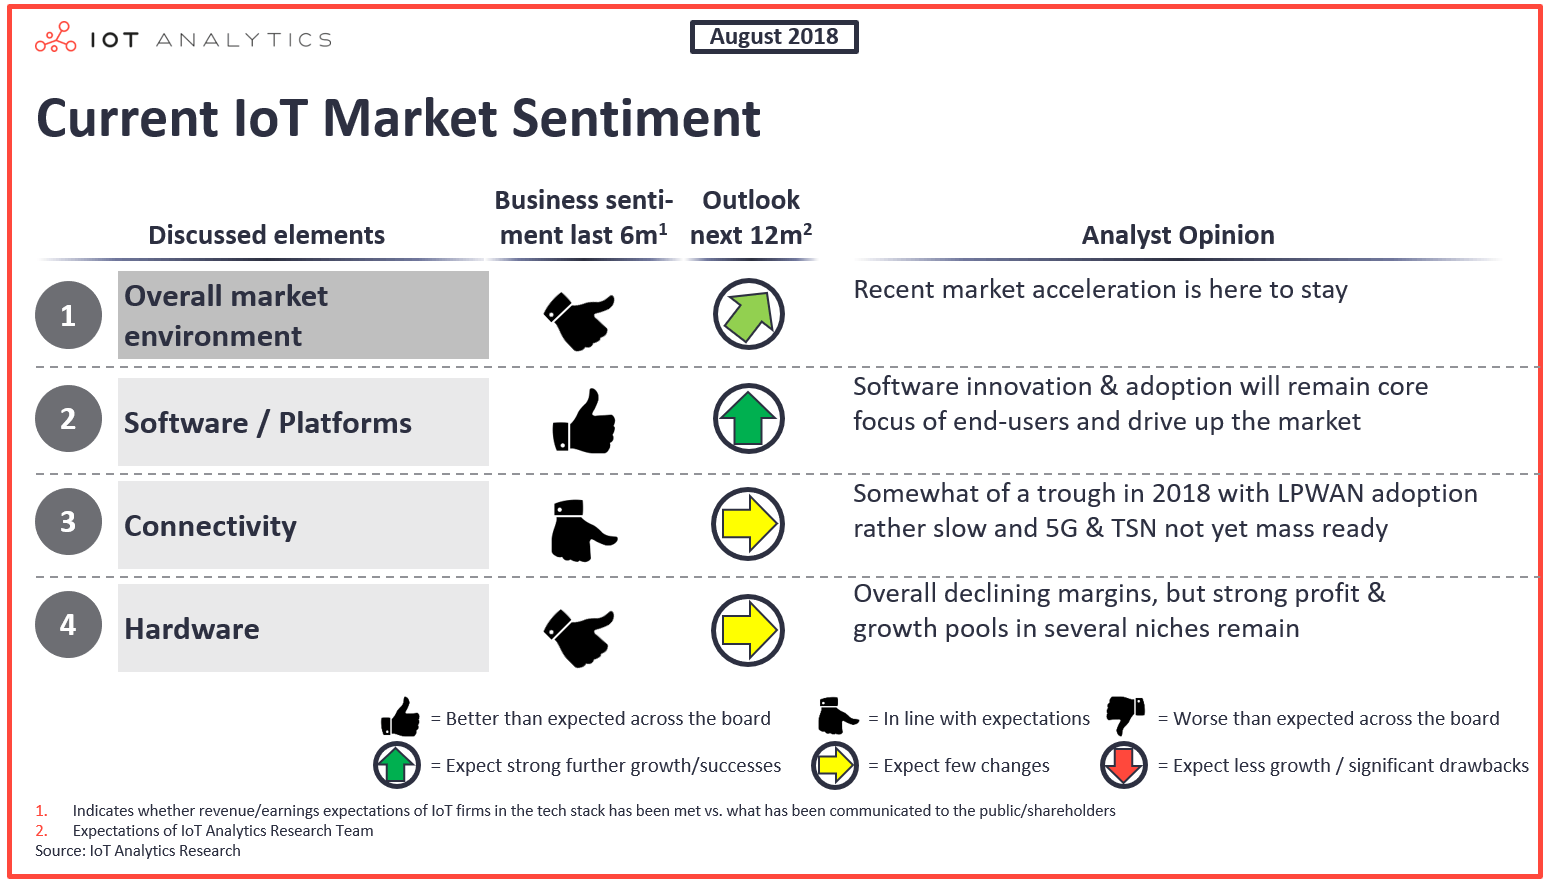 Current IoT Market Sentiment - August 2018